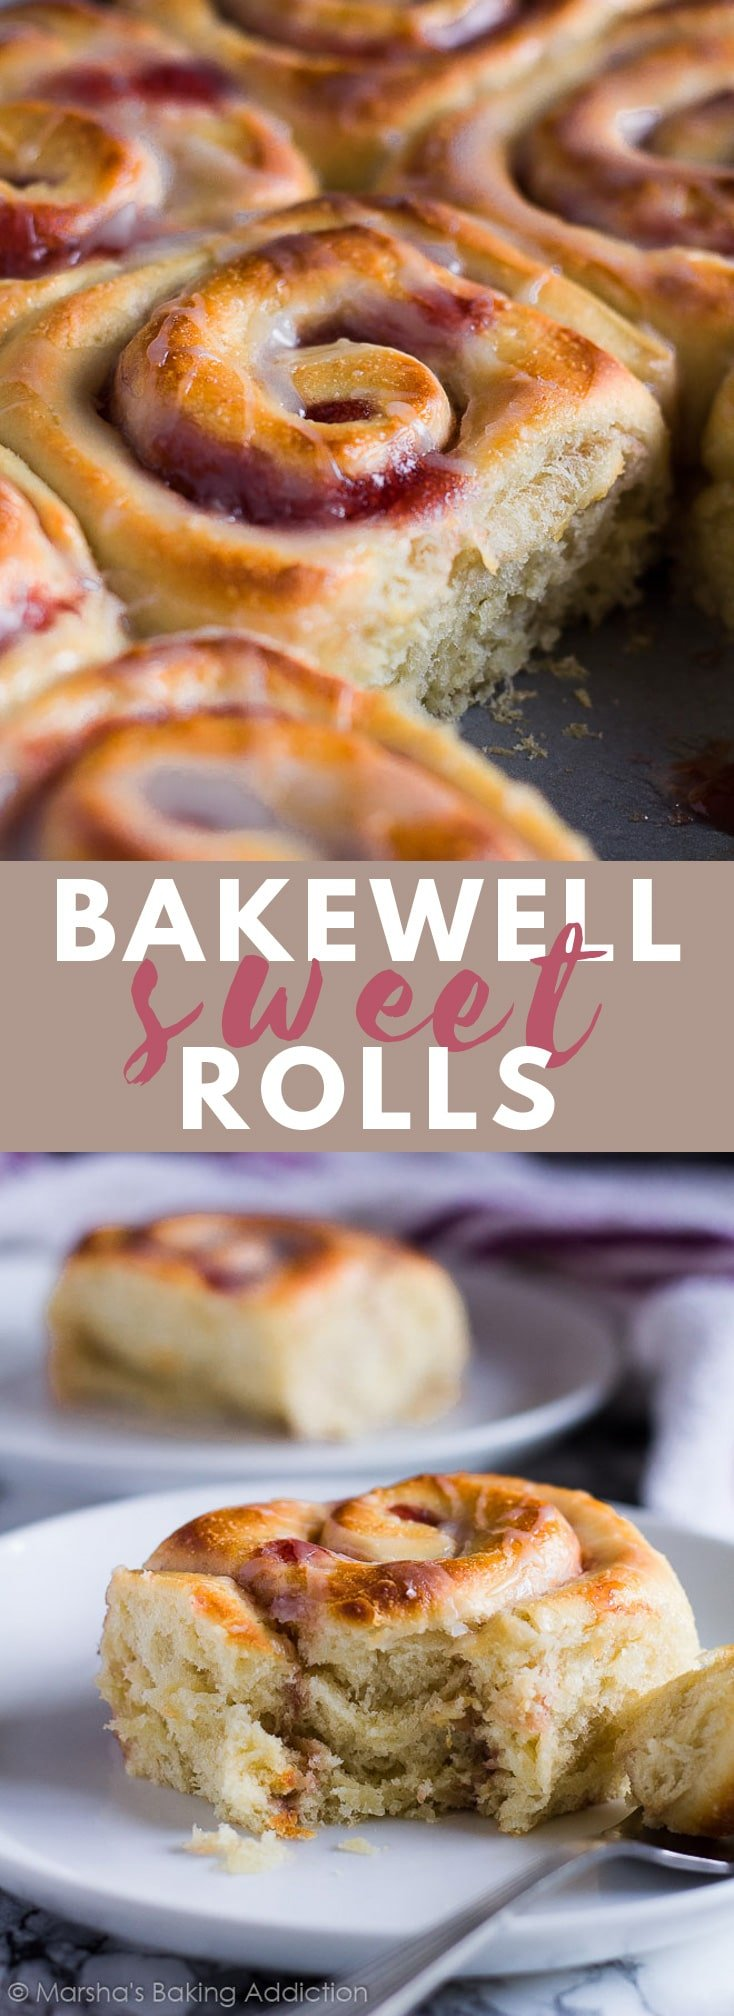 Bakewell Sweet Rolls -  Deliciously soft and fluffy almond flavoured sweet rolls filled with raspberry jam, and drizzled with a sweet almond glaze! #bakewell #sweetrolls #breadrecipes